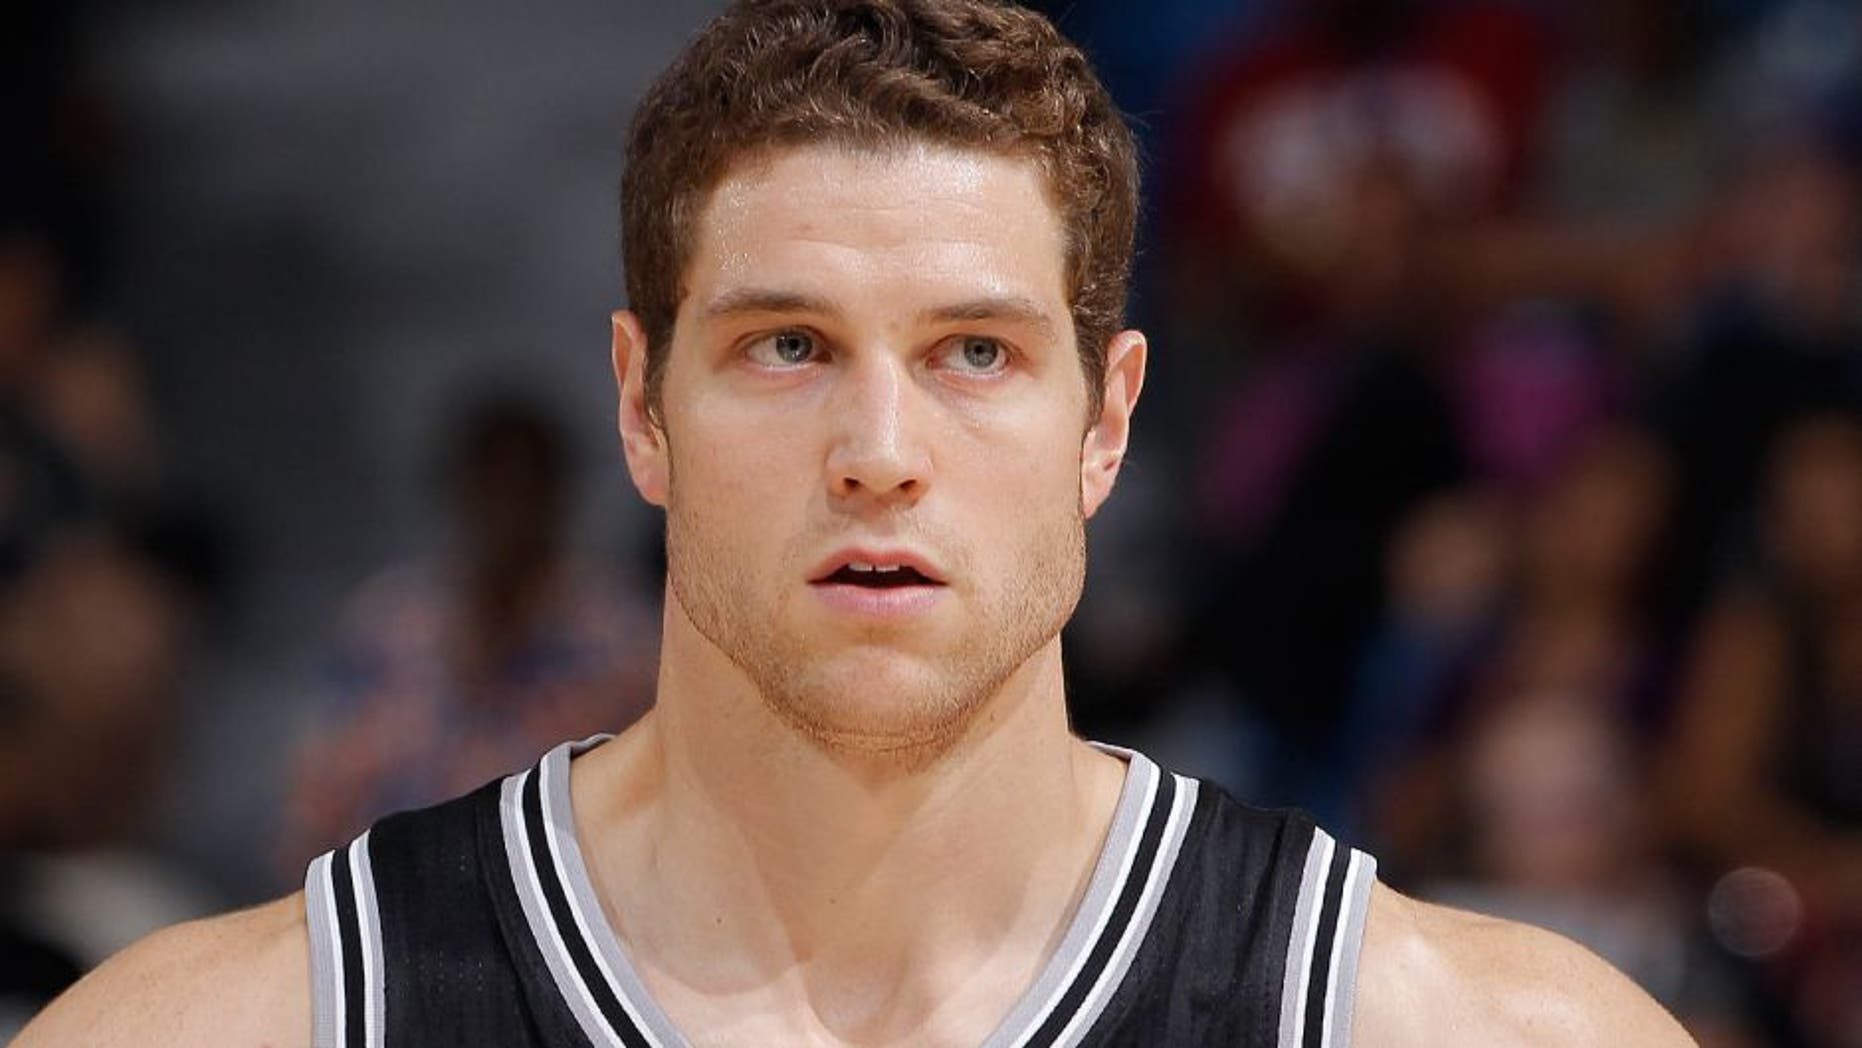 SACRAMENTO, CA - OCTOBER 8: Jimmer Fredette #16 of the San Antonio Spurs looks on during the game against the Sacramento Kings on October 8, 2015 at Sleep Train Arena in Sacramento, California. NOTE TO USER: User expressly acknowledges and agrees that, by downloading and or using this photograph, User is consenting to the terms and conditions of the Getty Images Agreement. Mandatory Copyright Notice: Copyright 2015 NBAE (Photo by Rocky Widner/NBAE via Getty Images)